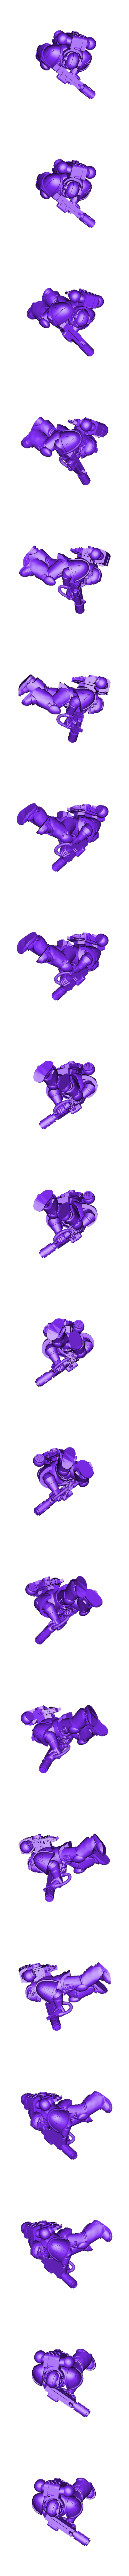 6_Melta.stl Download free STL file Angelic Space Soldiers with Heavy Weapons • Template to 3D print, PhysUdo